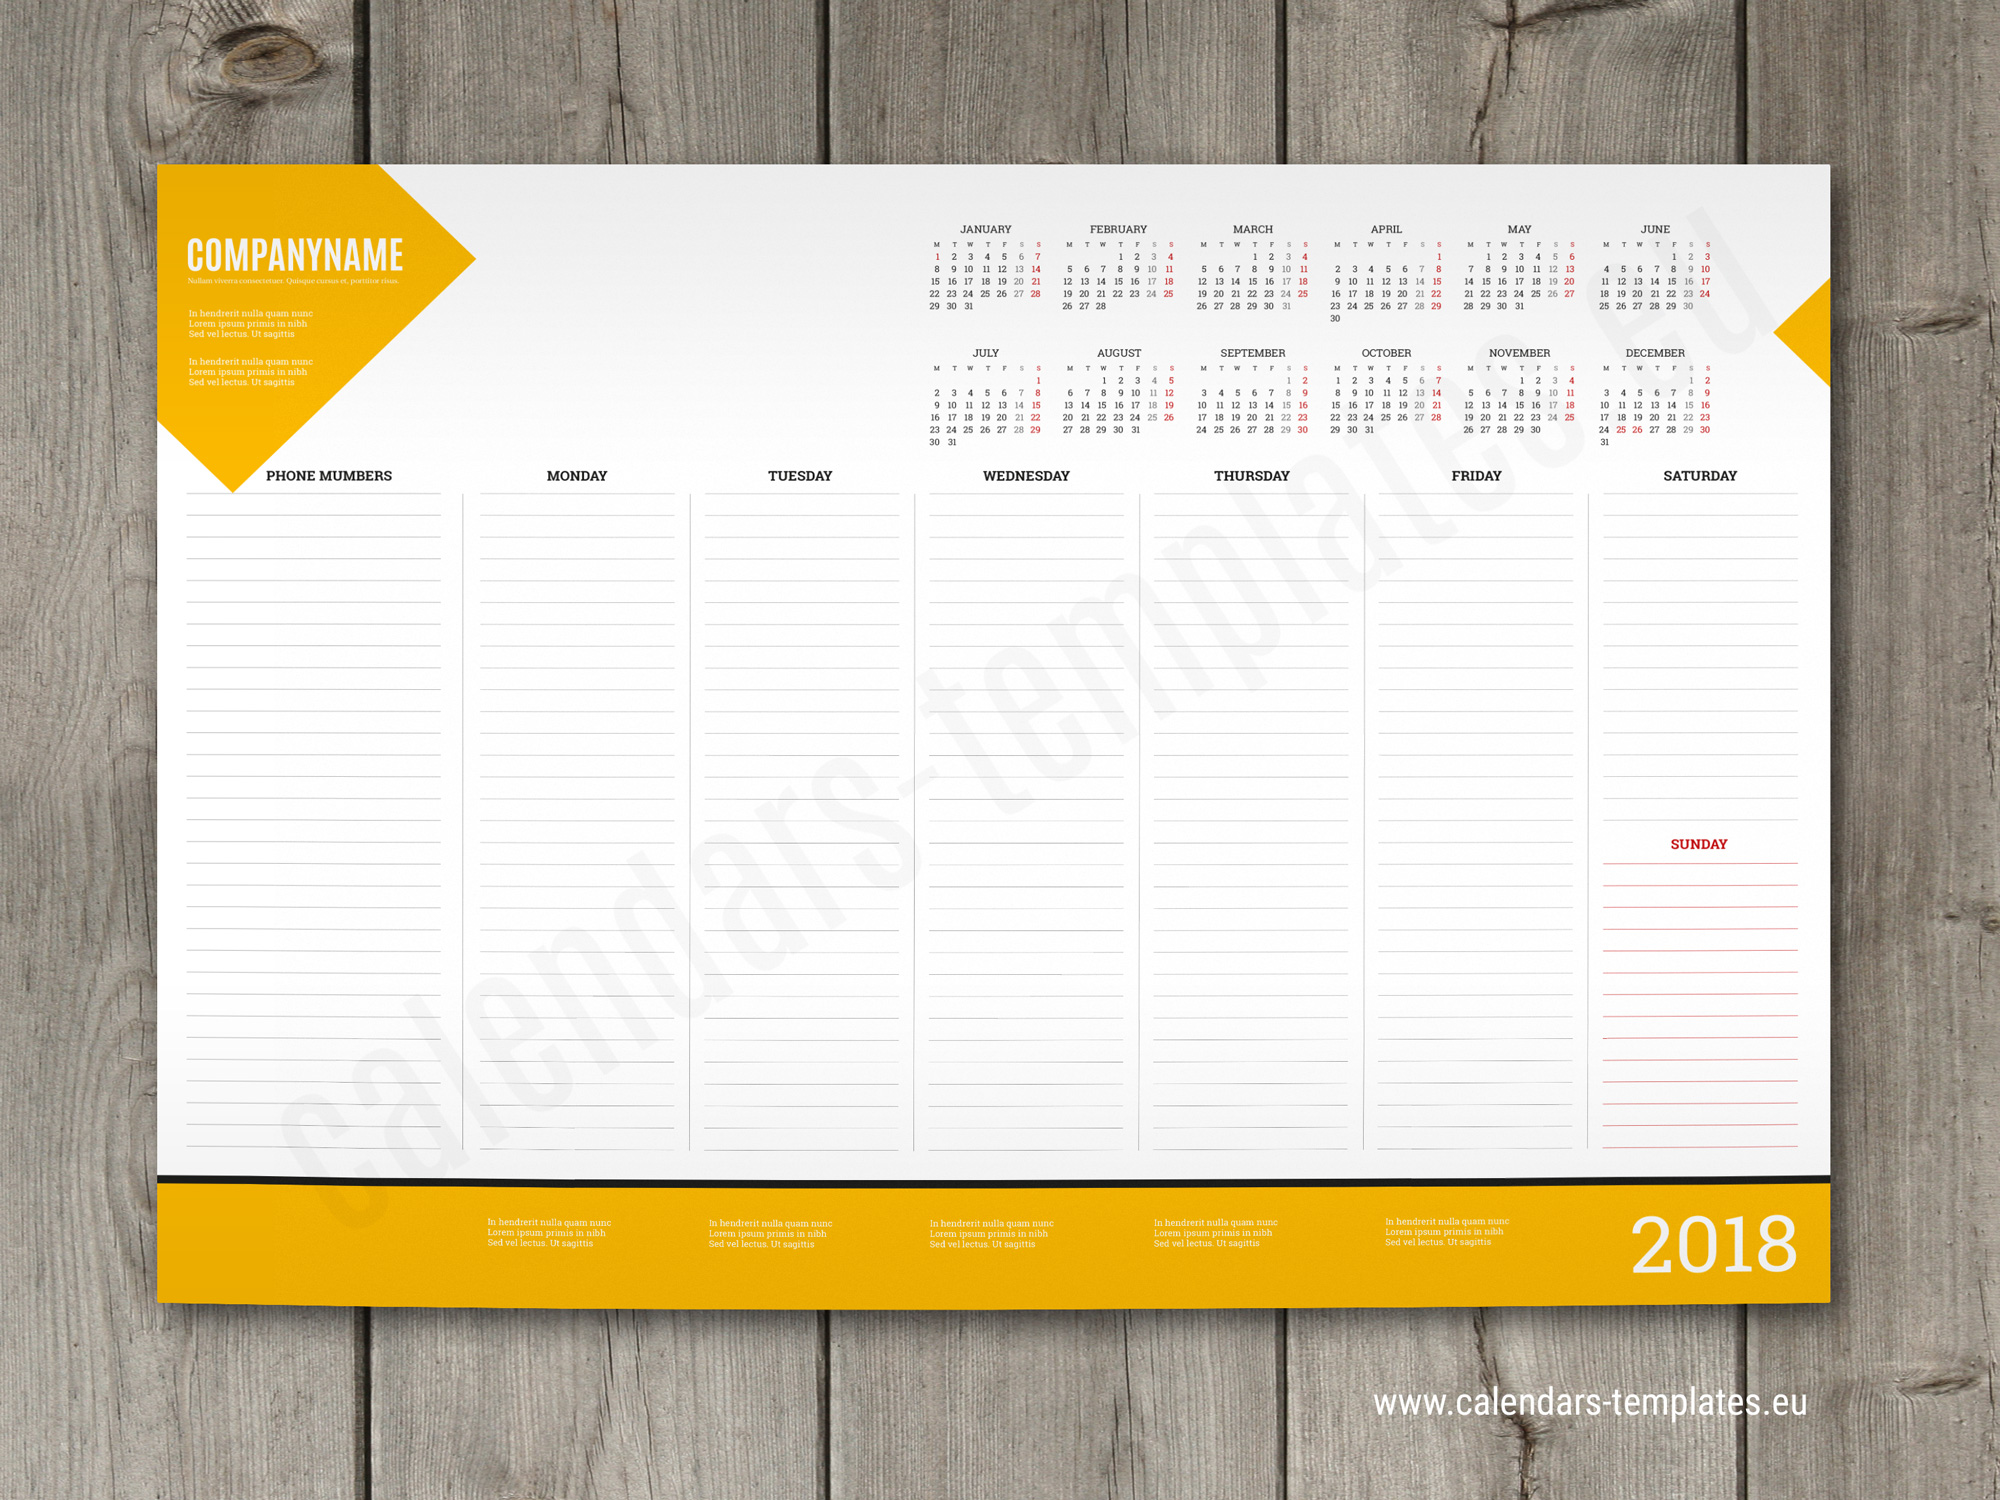 Desk Calendar Planner : Weekly desk pad planner template with yearly calendar